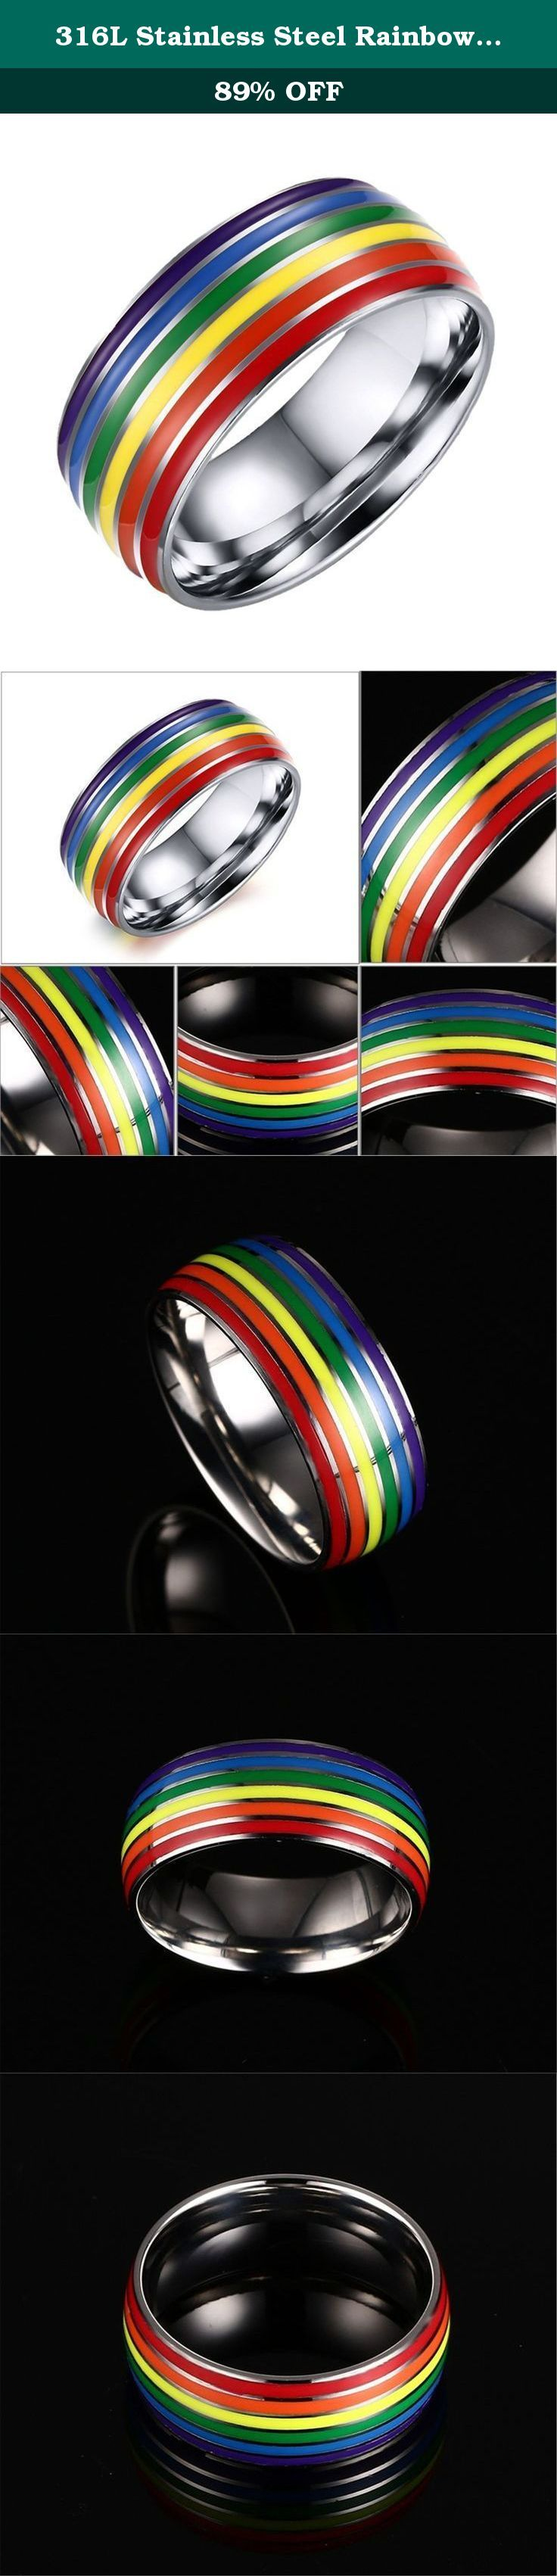 316L Stainless Steel Rainbow Wedding Band Ring for Unisex Lesbian LGBT Gay Lara 10. Unisex LGBT Gay Pride Lesbian Lara 316L Stainless Steel Rainbow Wedding Band Ring 8mm Silver How to know your size: Step 1: Cut a strip of paper long enough to fit around your finger. Step 2: Wrap the paper somewhat tightly around your finger at the knuckle and mark where the two ends meet. Step 3: Measure the length of the paper from the end to your pencil mark. Warm tips: The paper measurement is…